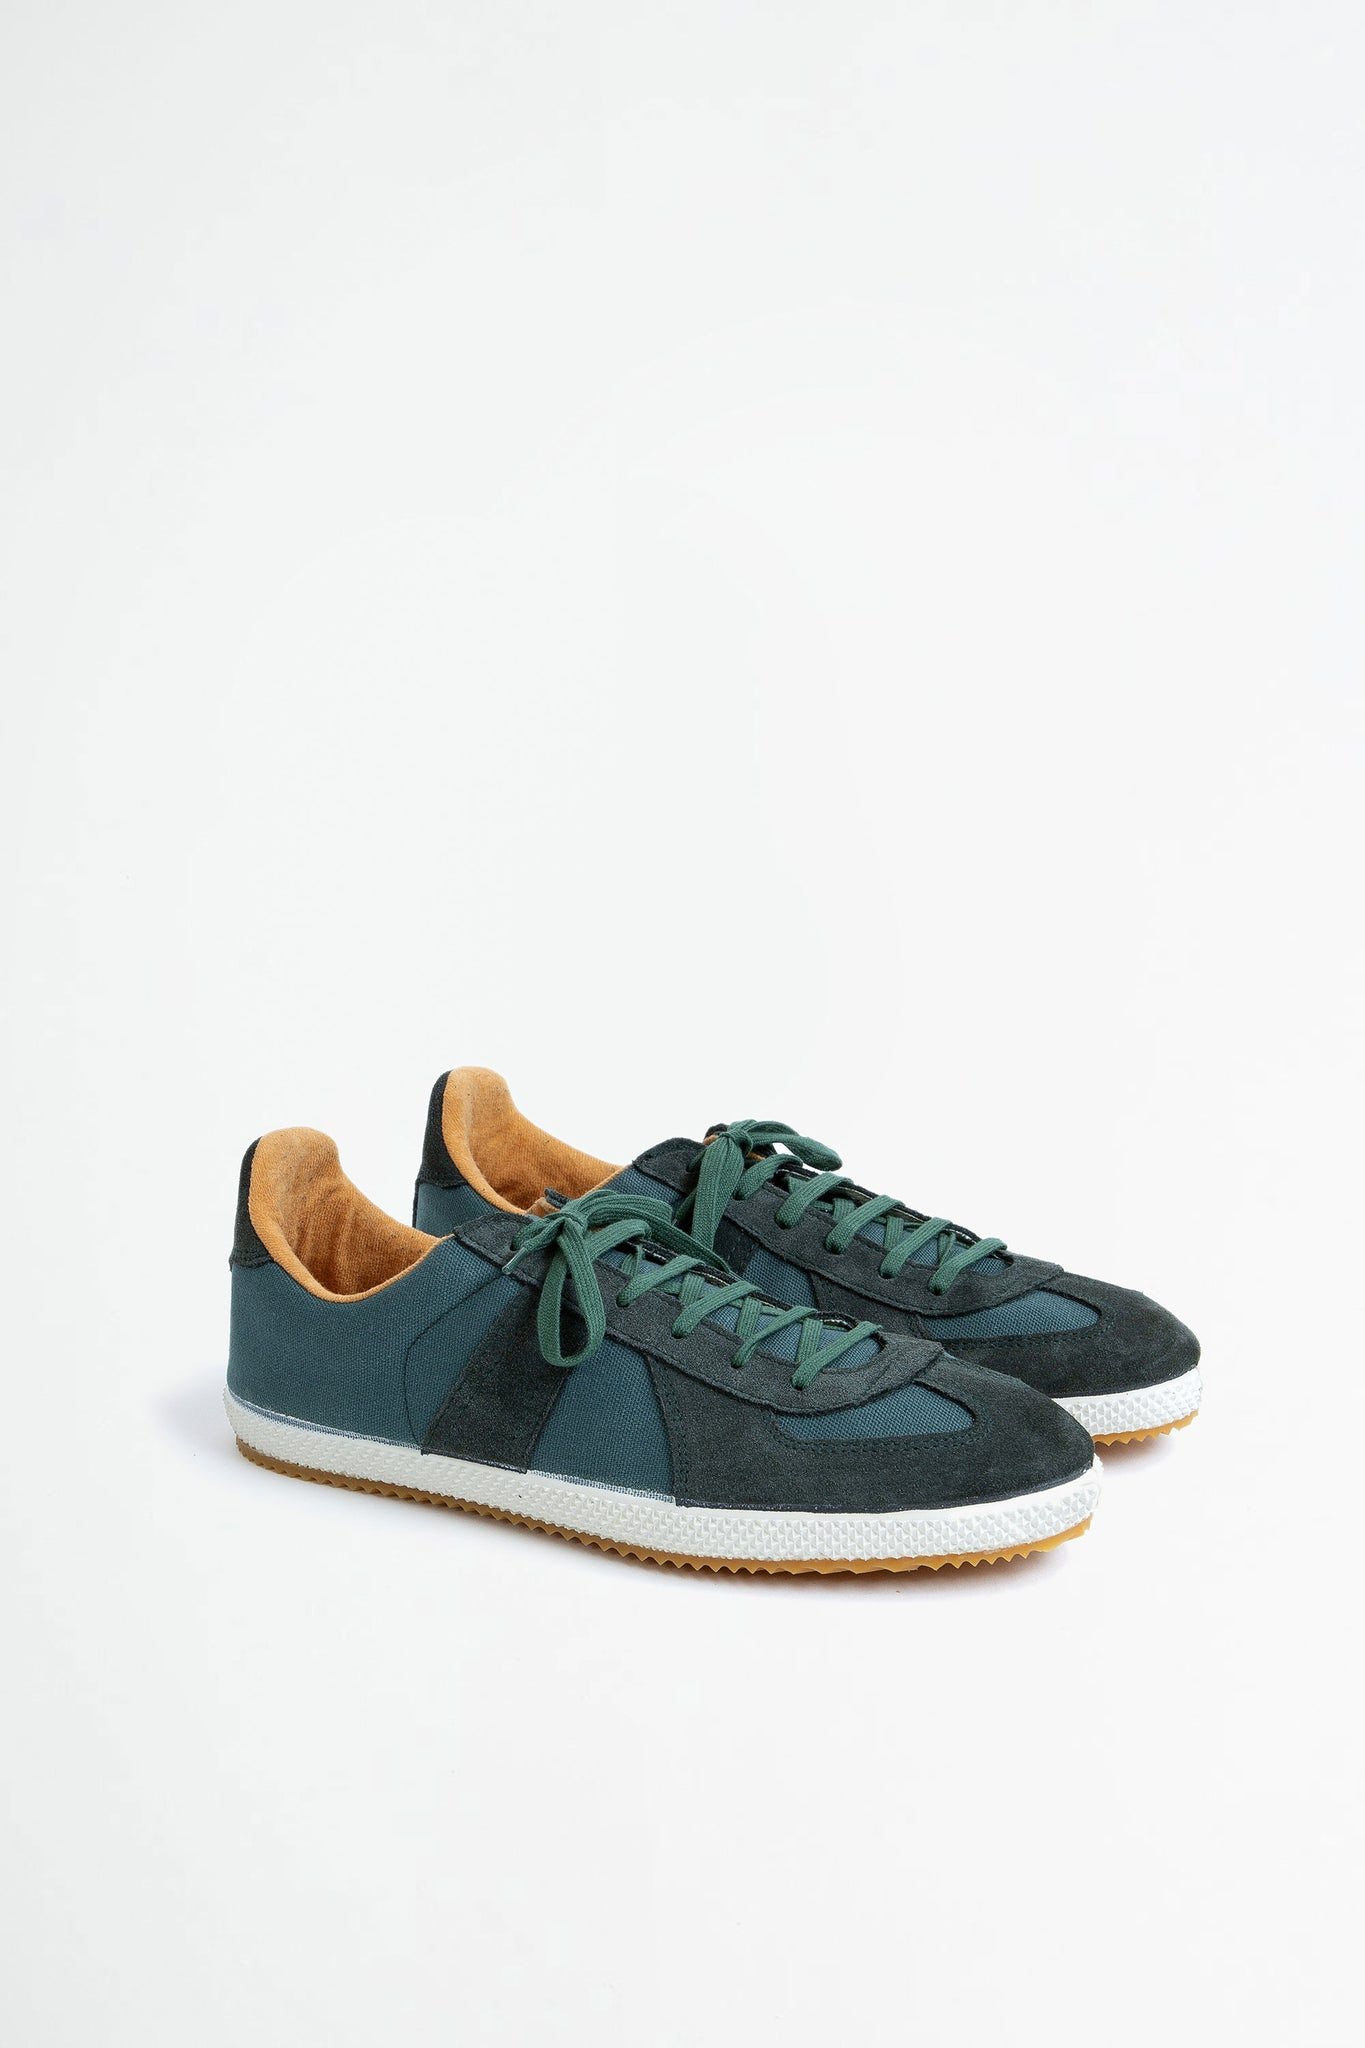 German military trainer green